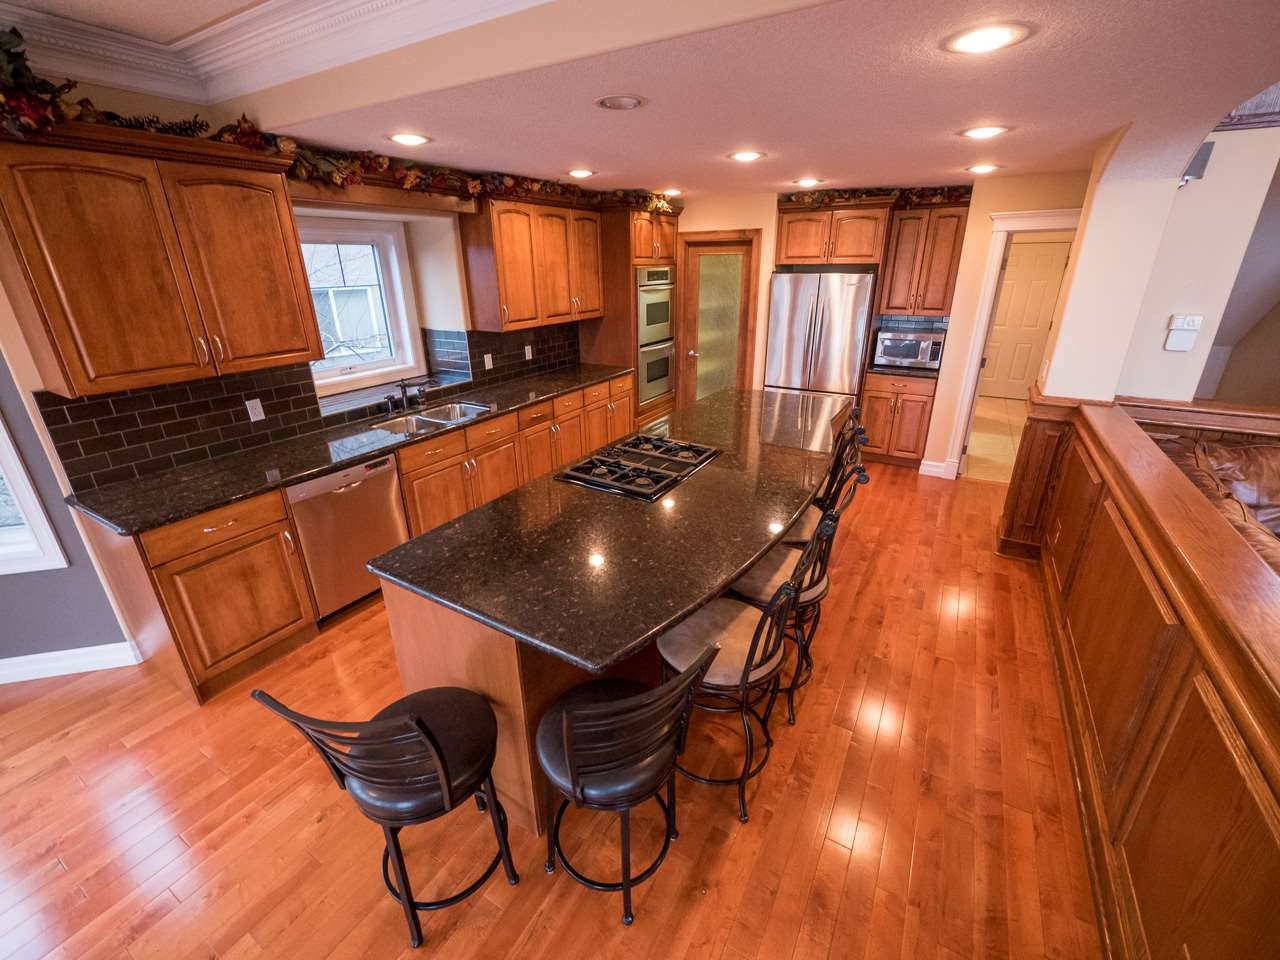 Spacious kitchen boasts lots of storage and a walk-through pantry.